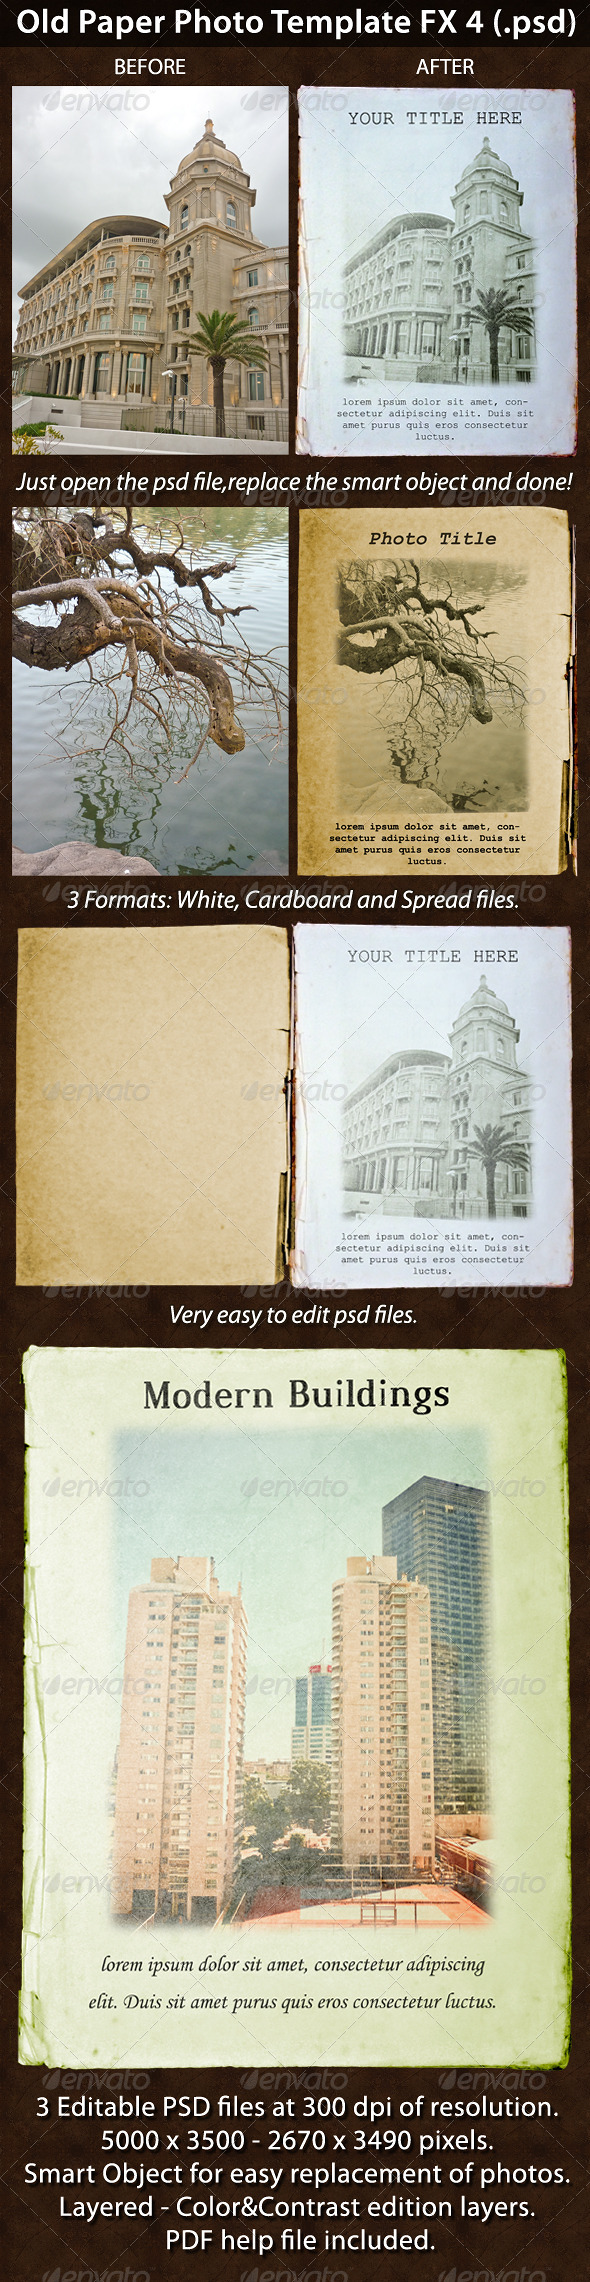 Old Paper Photo Template FX 4